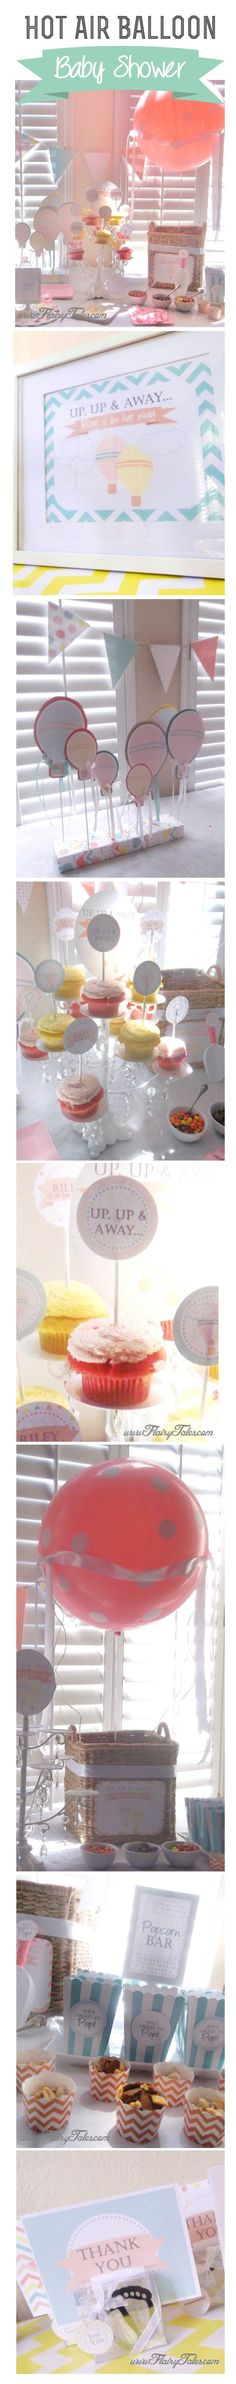 Ideas for a hot air balloon baby shower. Could easily be tweaked for a boy or girl, or gender neutral baby shower. www.flairytales.com